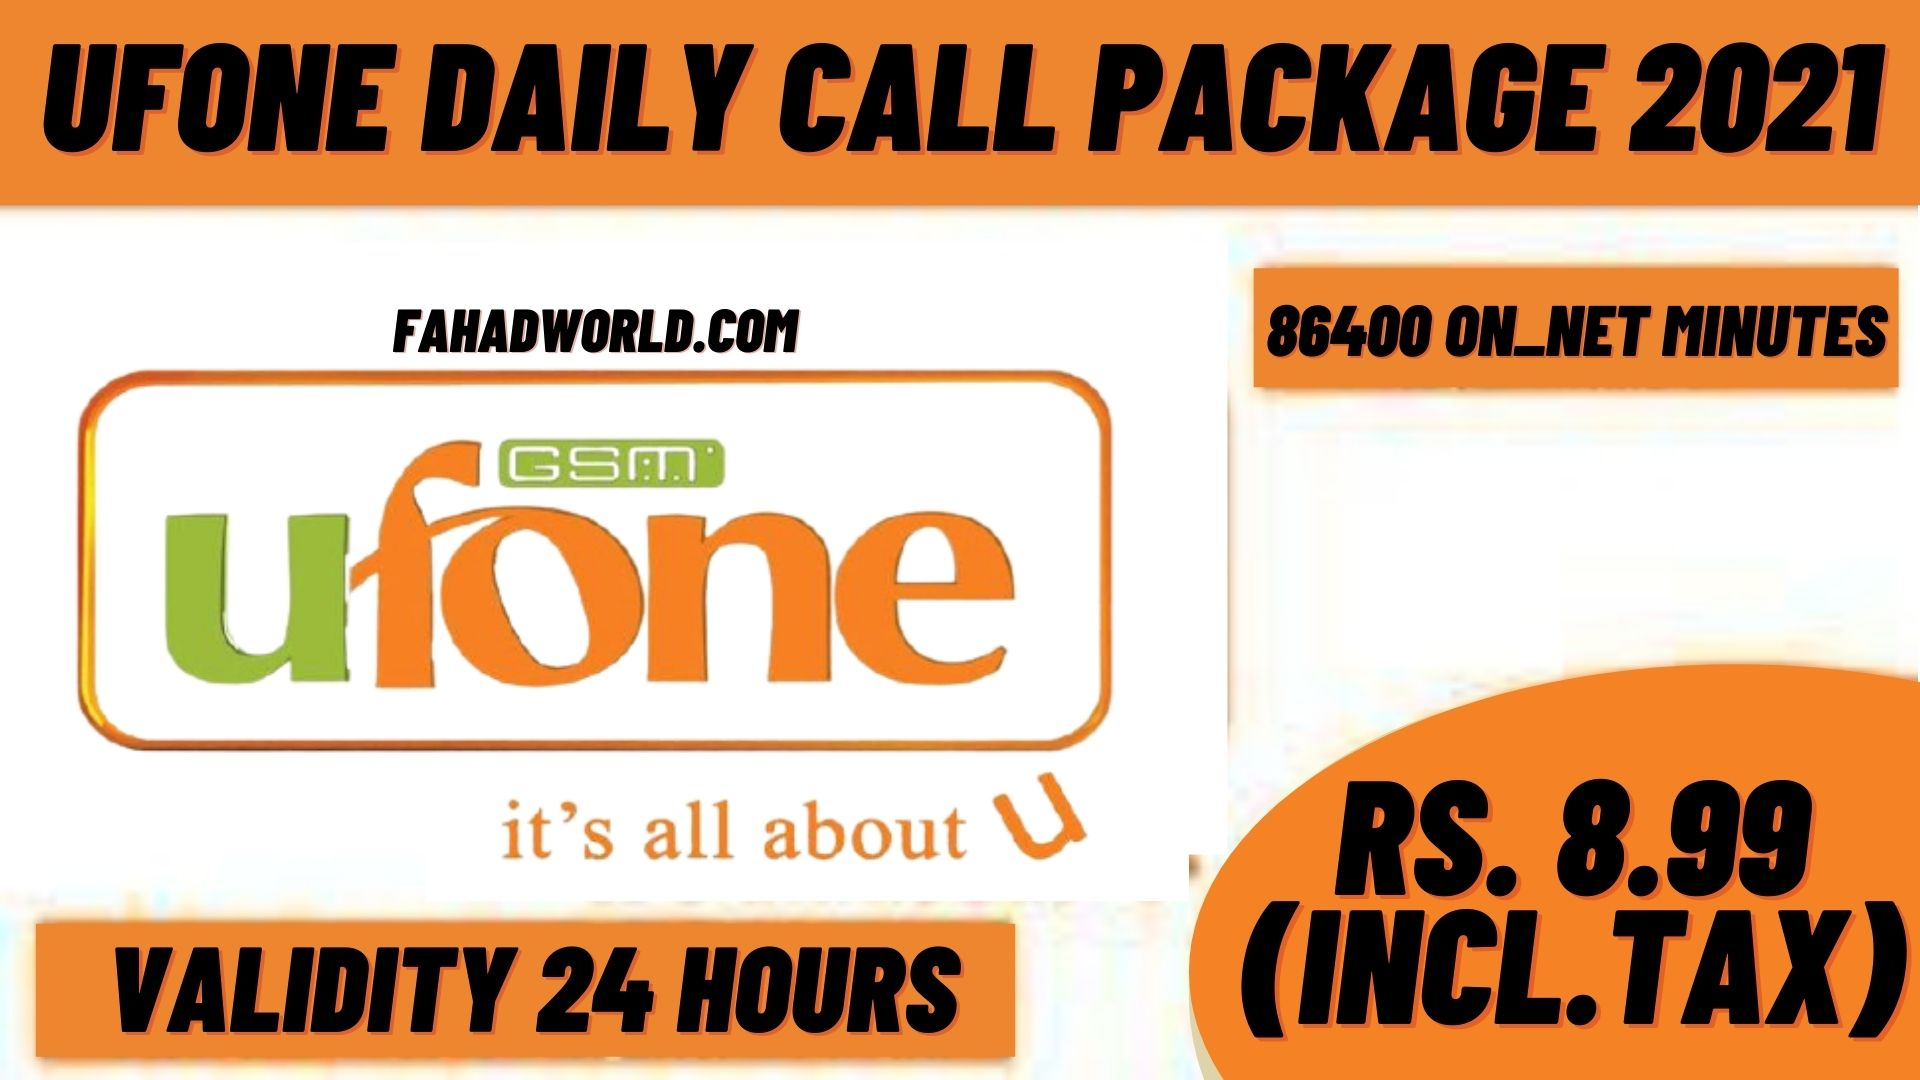 Ufone Daily Call Package